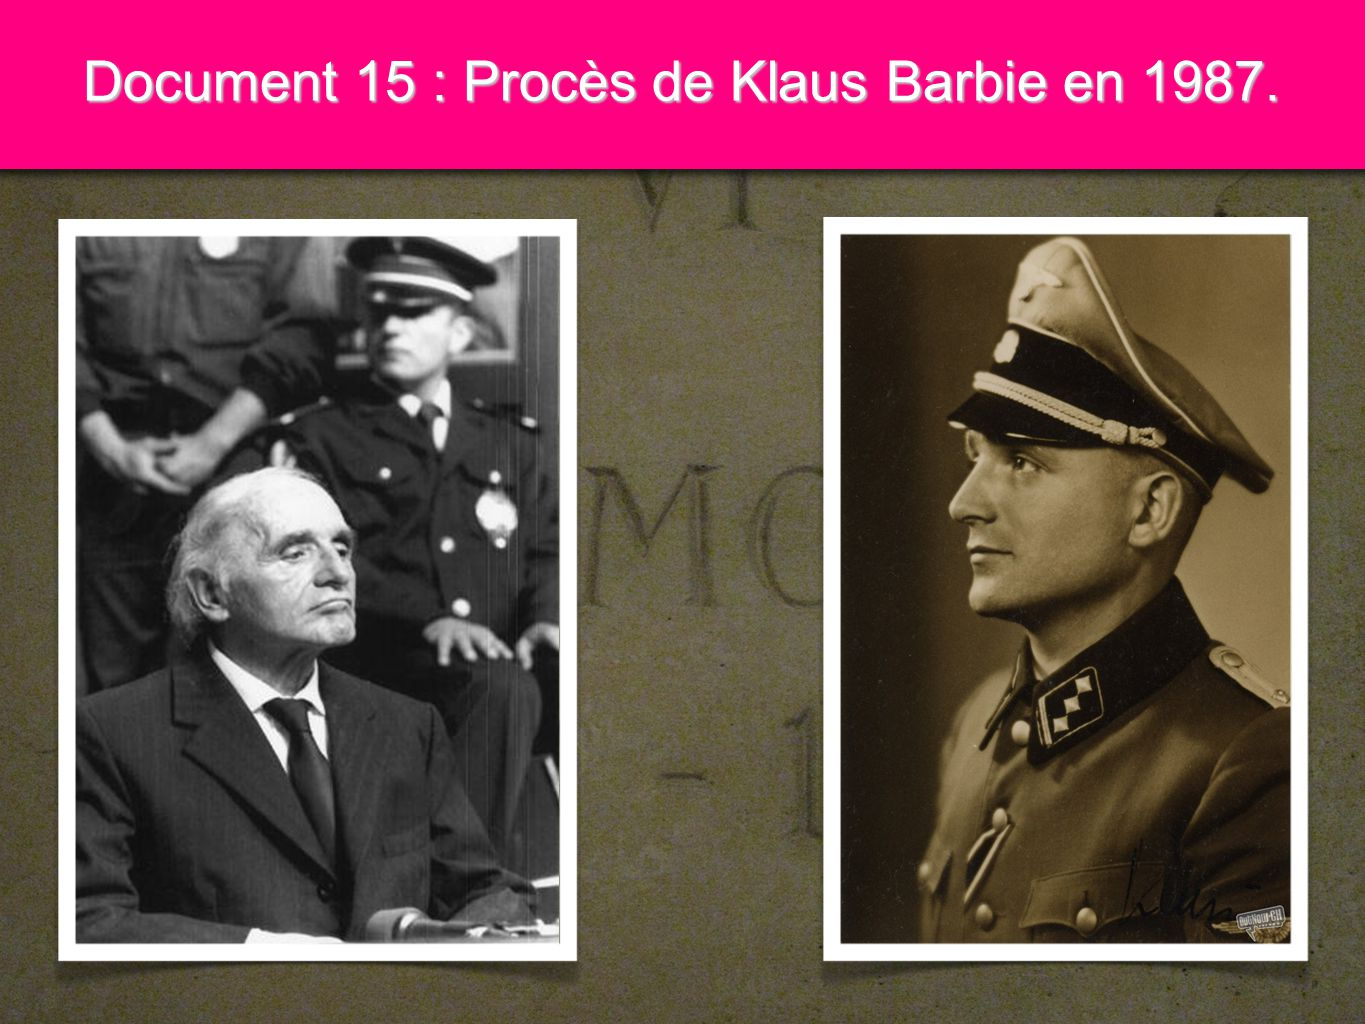 7 Document 15 : Procès de Klaus Barbie en 1987.